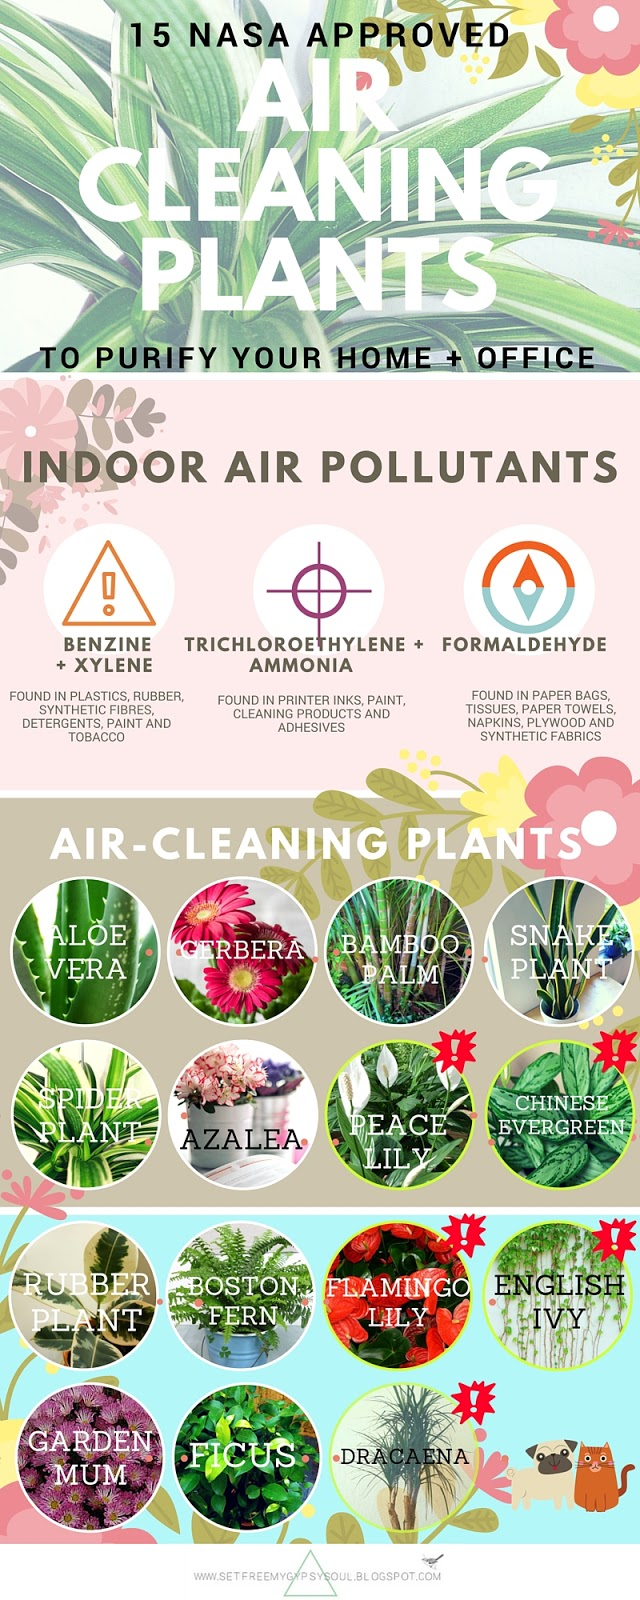 air cleaning purifying houseplants plant infographic nasa clean air